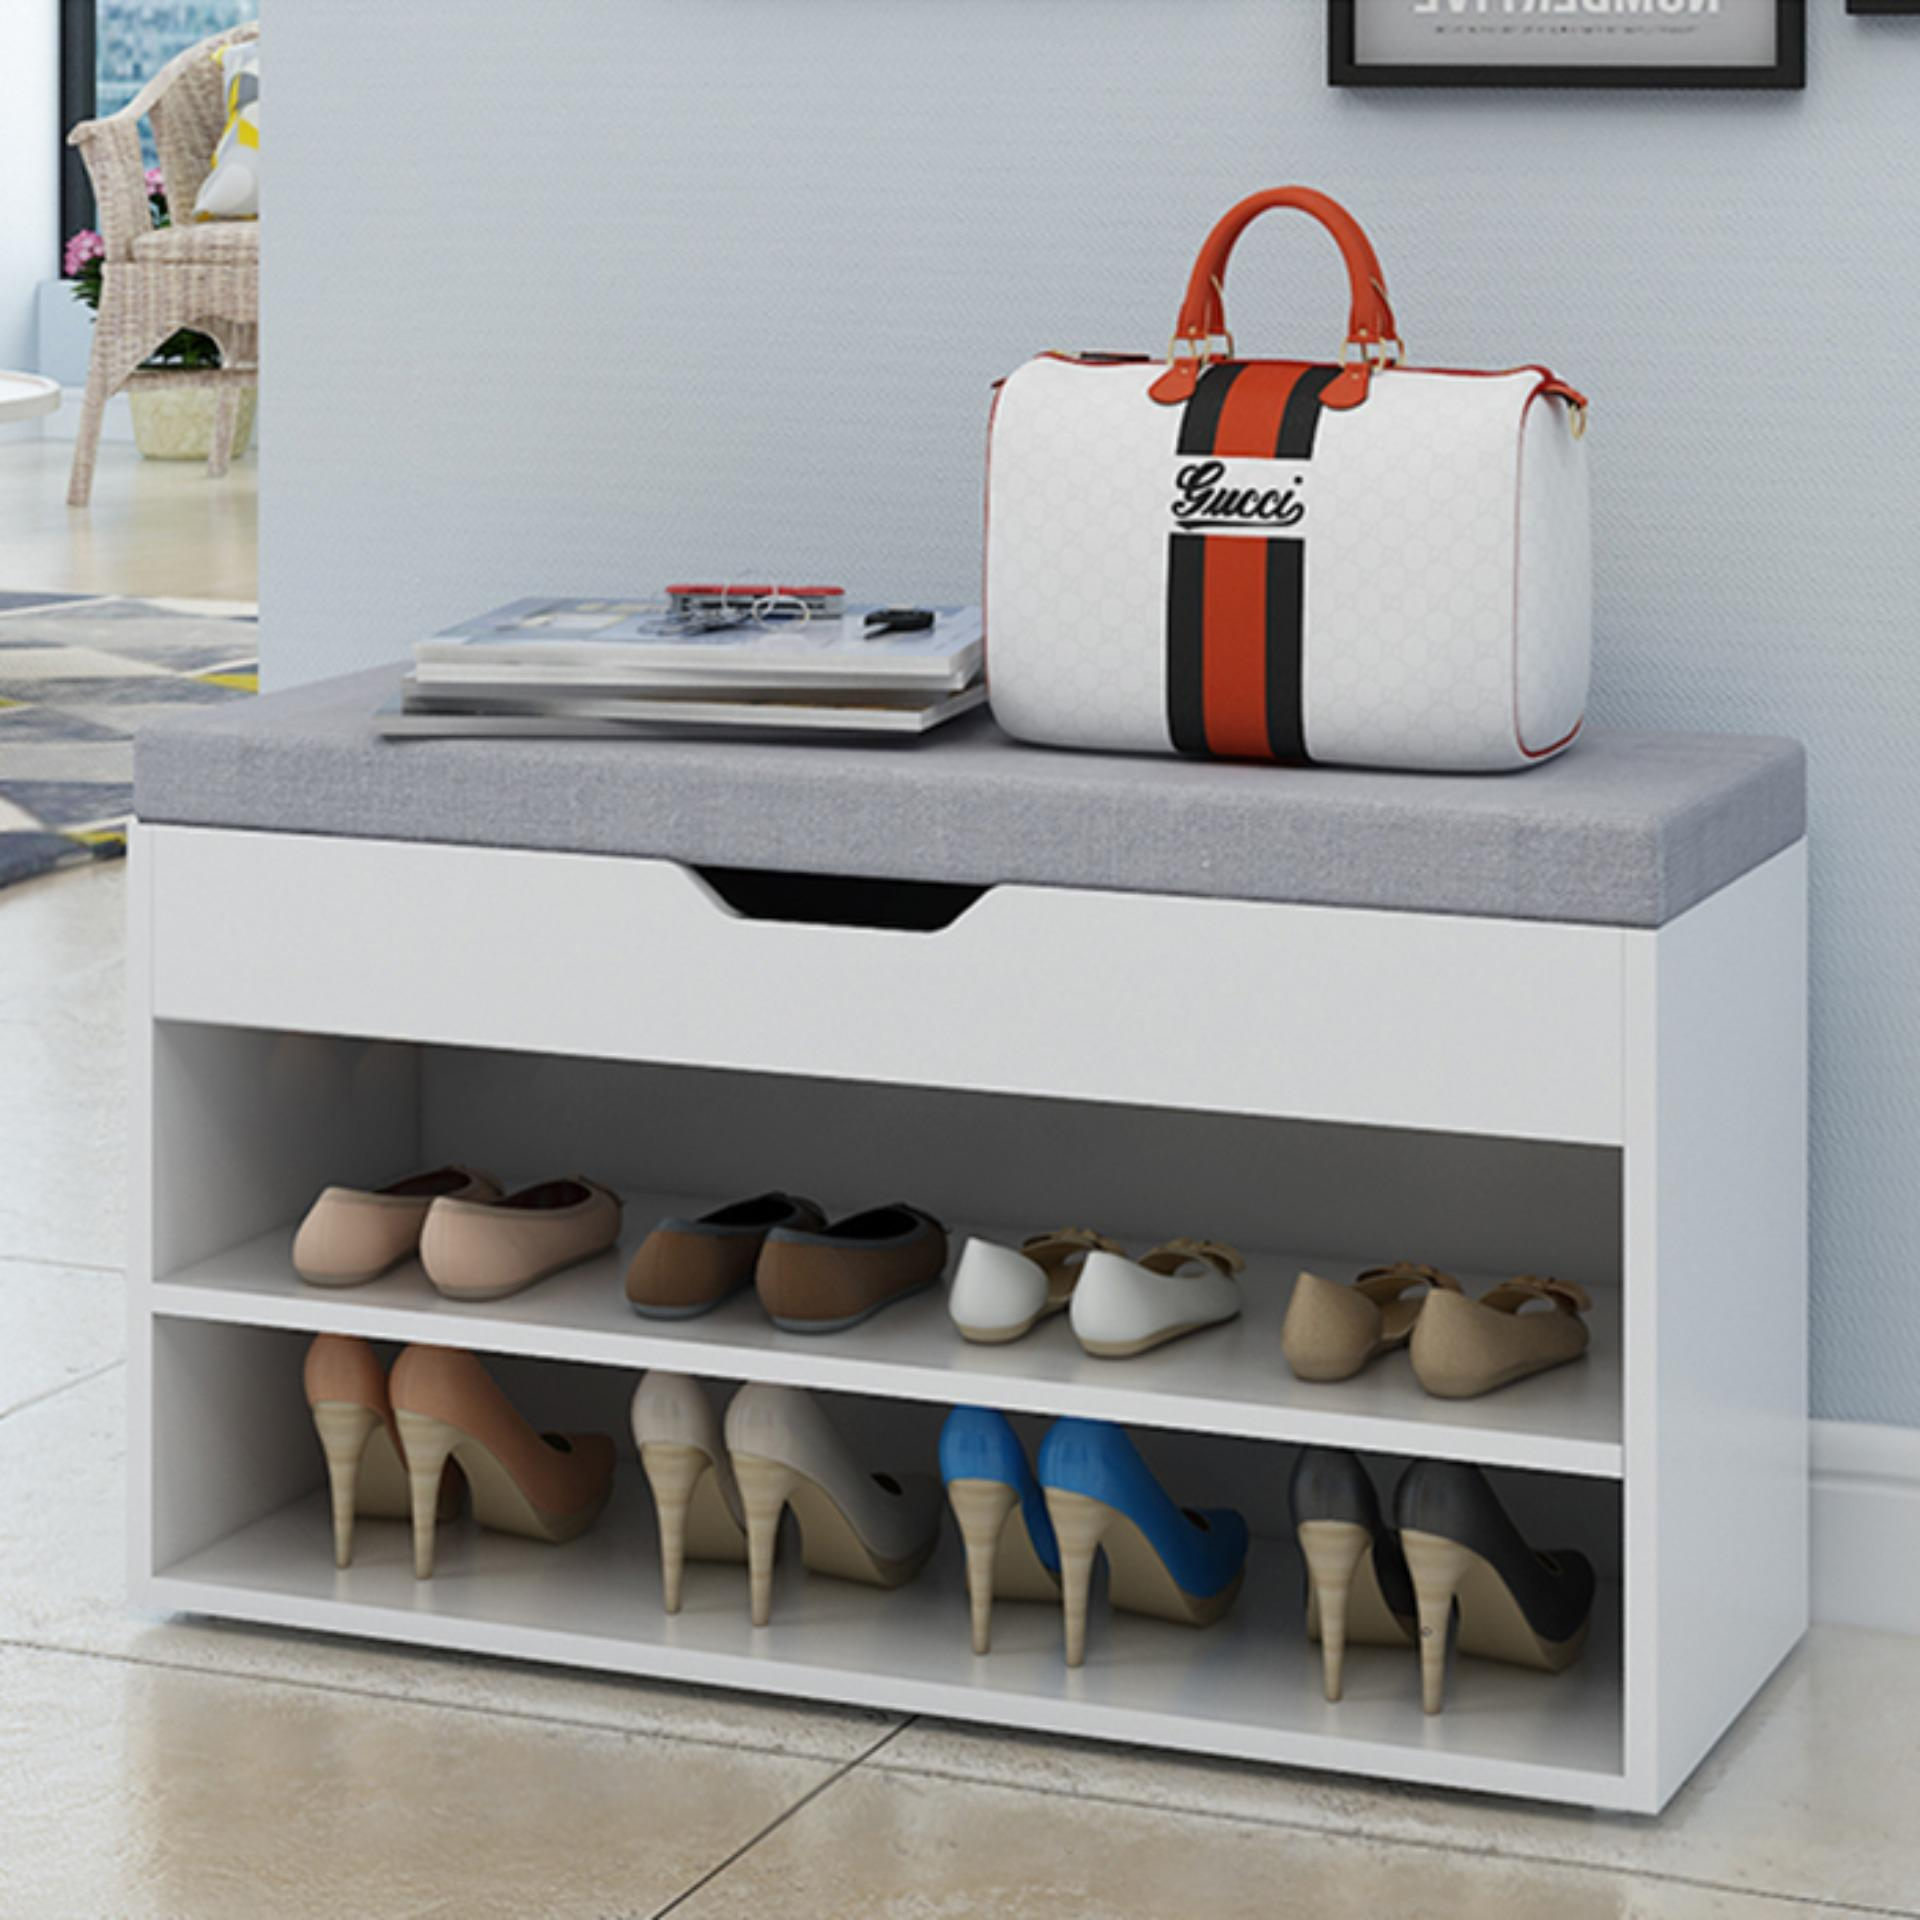 Bench with Shoe Storage (Off-White)